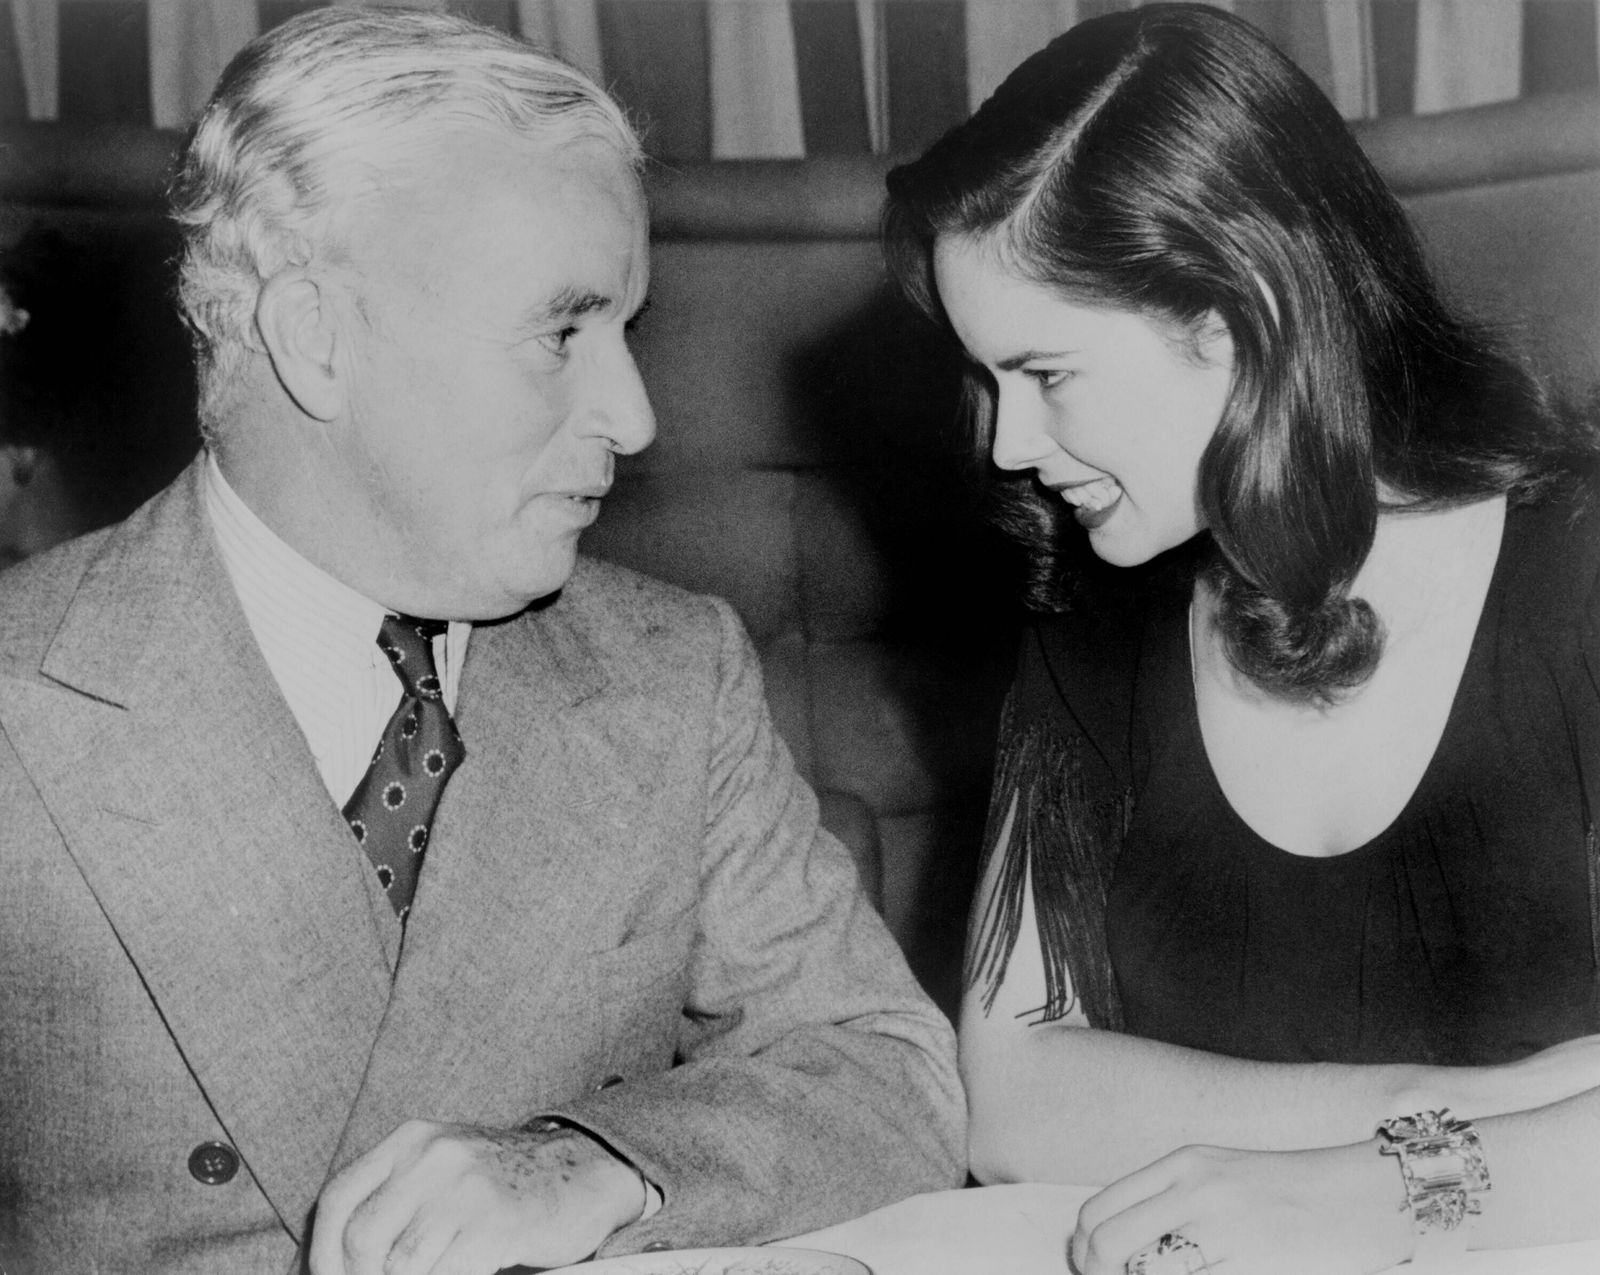 Charlie Chaplin (1889-1977) sitting with his young wife Oona at Hollywood nightclub in 1944. The couple married the prev